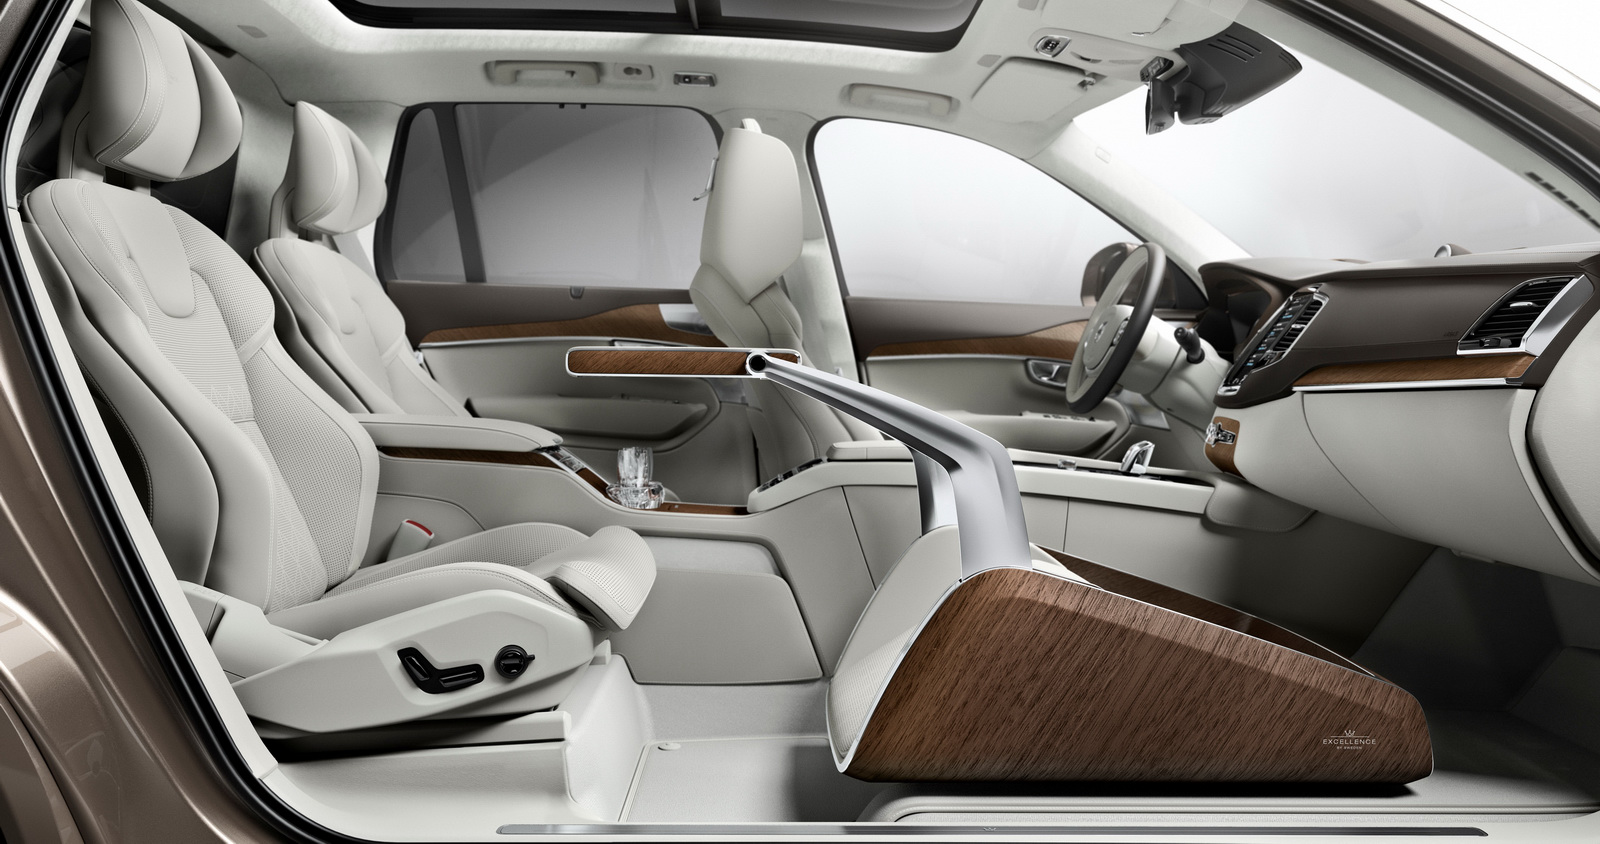 official volvo xc90 lounge console interior concept. Black Bedroom Furniture Sets. Home Design Ideas